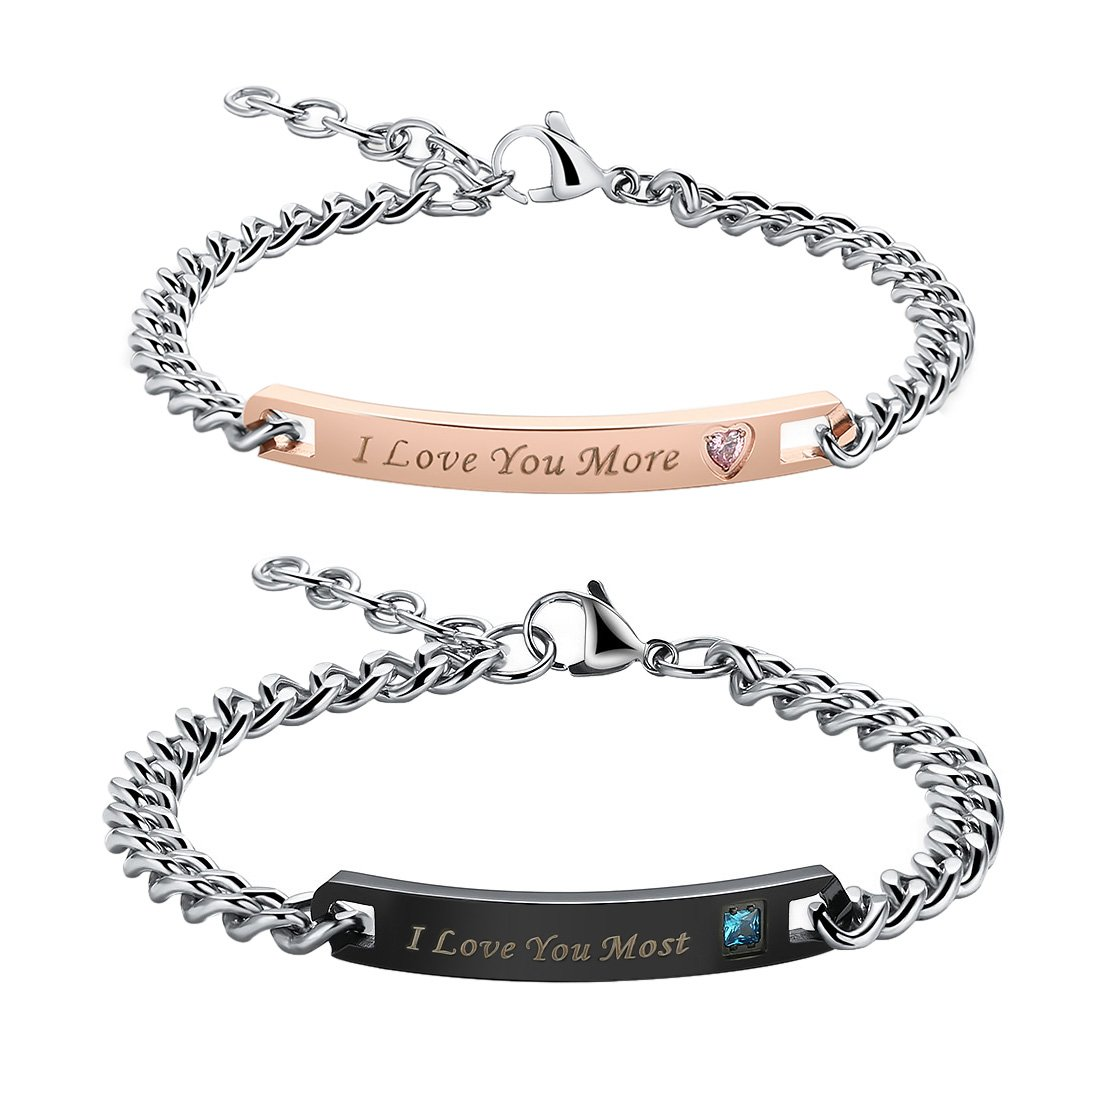 Gagafeel His Hers Couple Bracelet Titanium Stainless Steel Chain Matching Set Anniversary Gift (I Love You More I Love You Most)